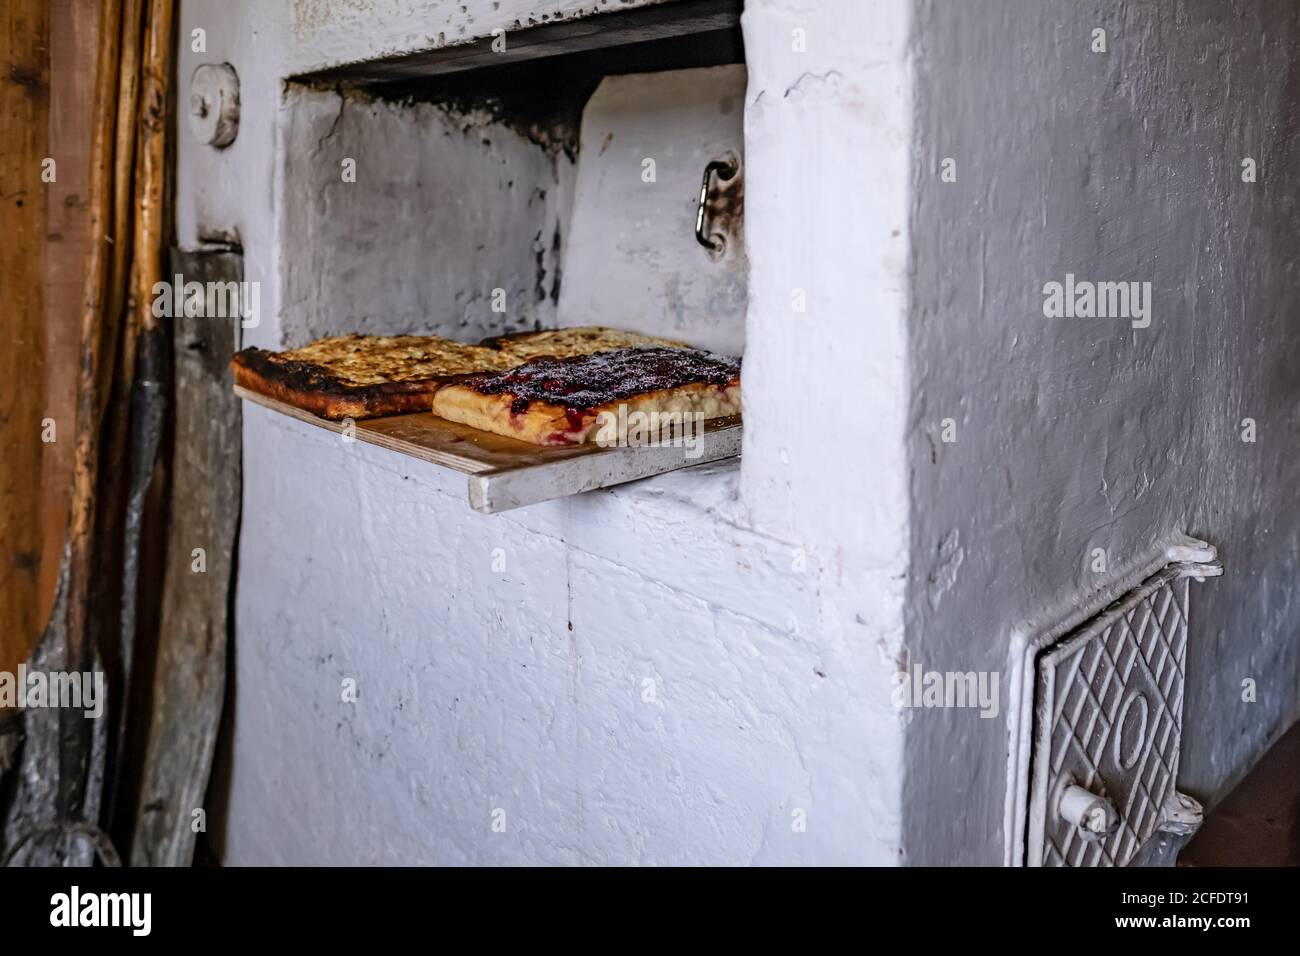 Pies Cooked In A Traditional Russian Oven On A Cutting Board Next To The Wall There Are Old Kitchen Utensils In A Village House Stock Photo Alamy